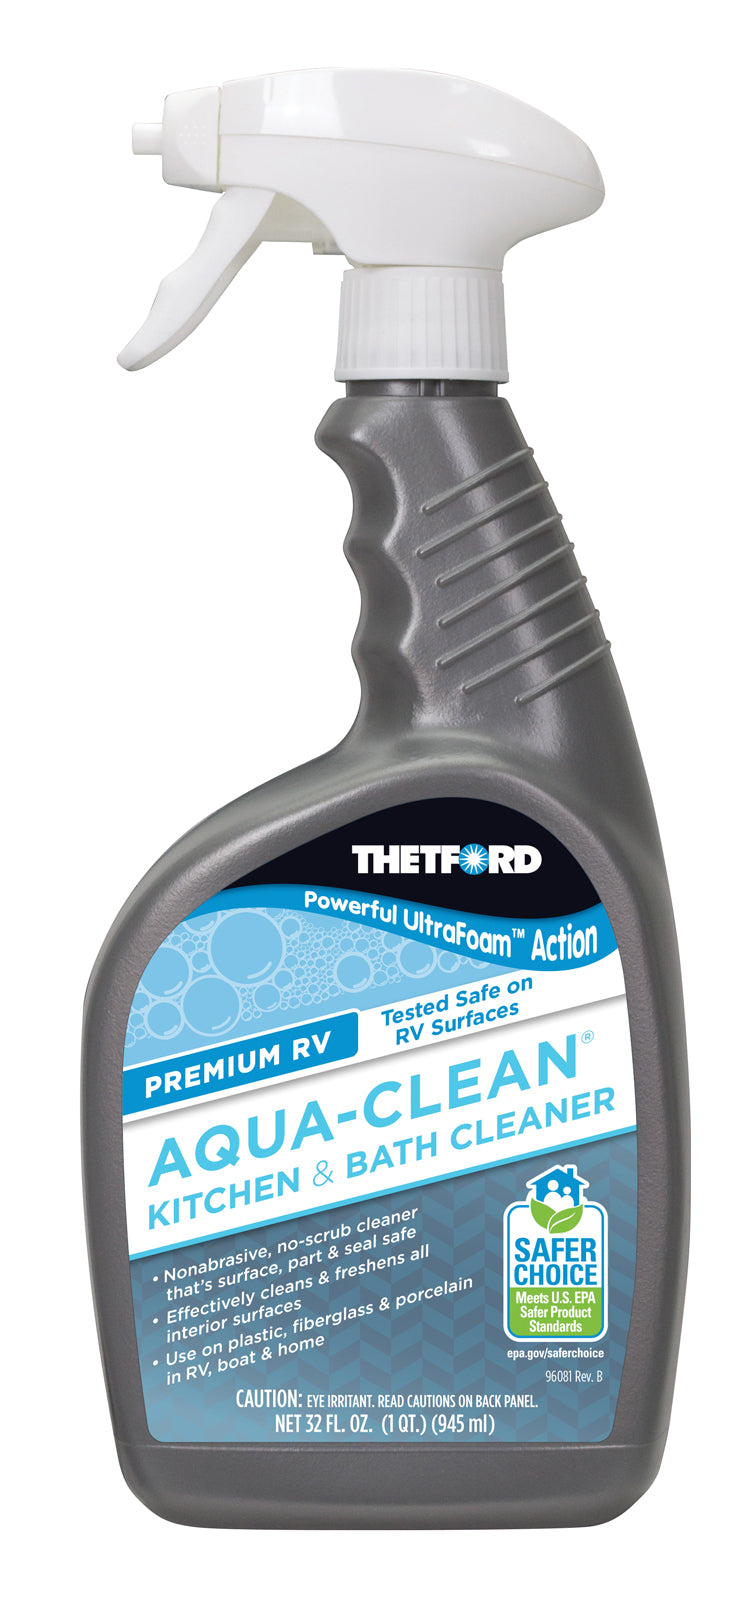 Thetford UltraFoam Aqua Kitchen and Bath Cleaner